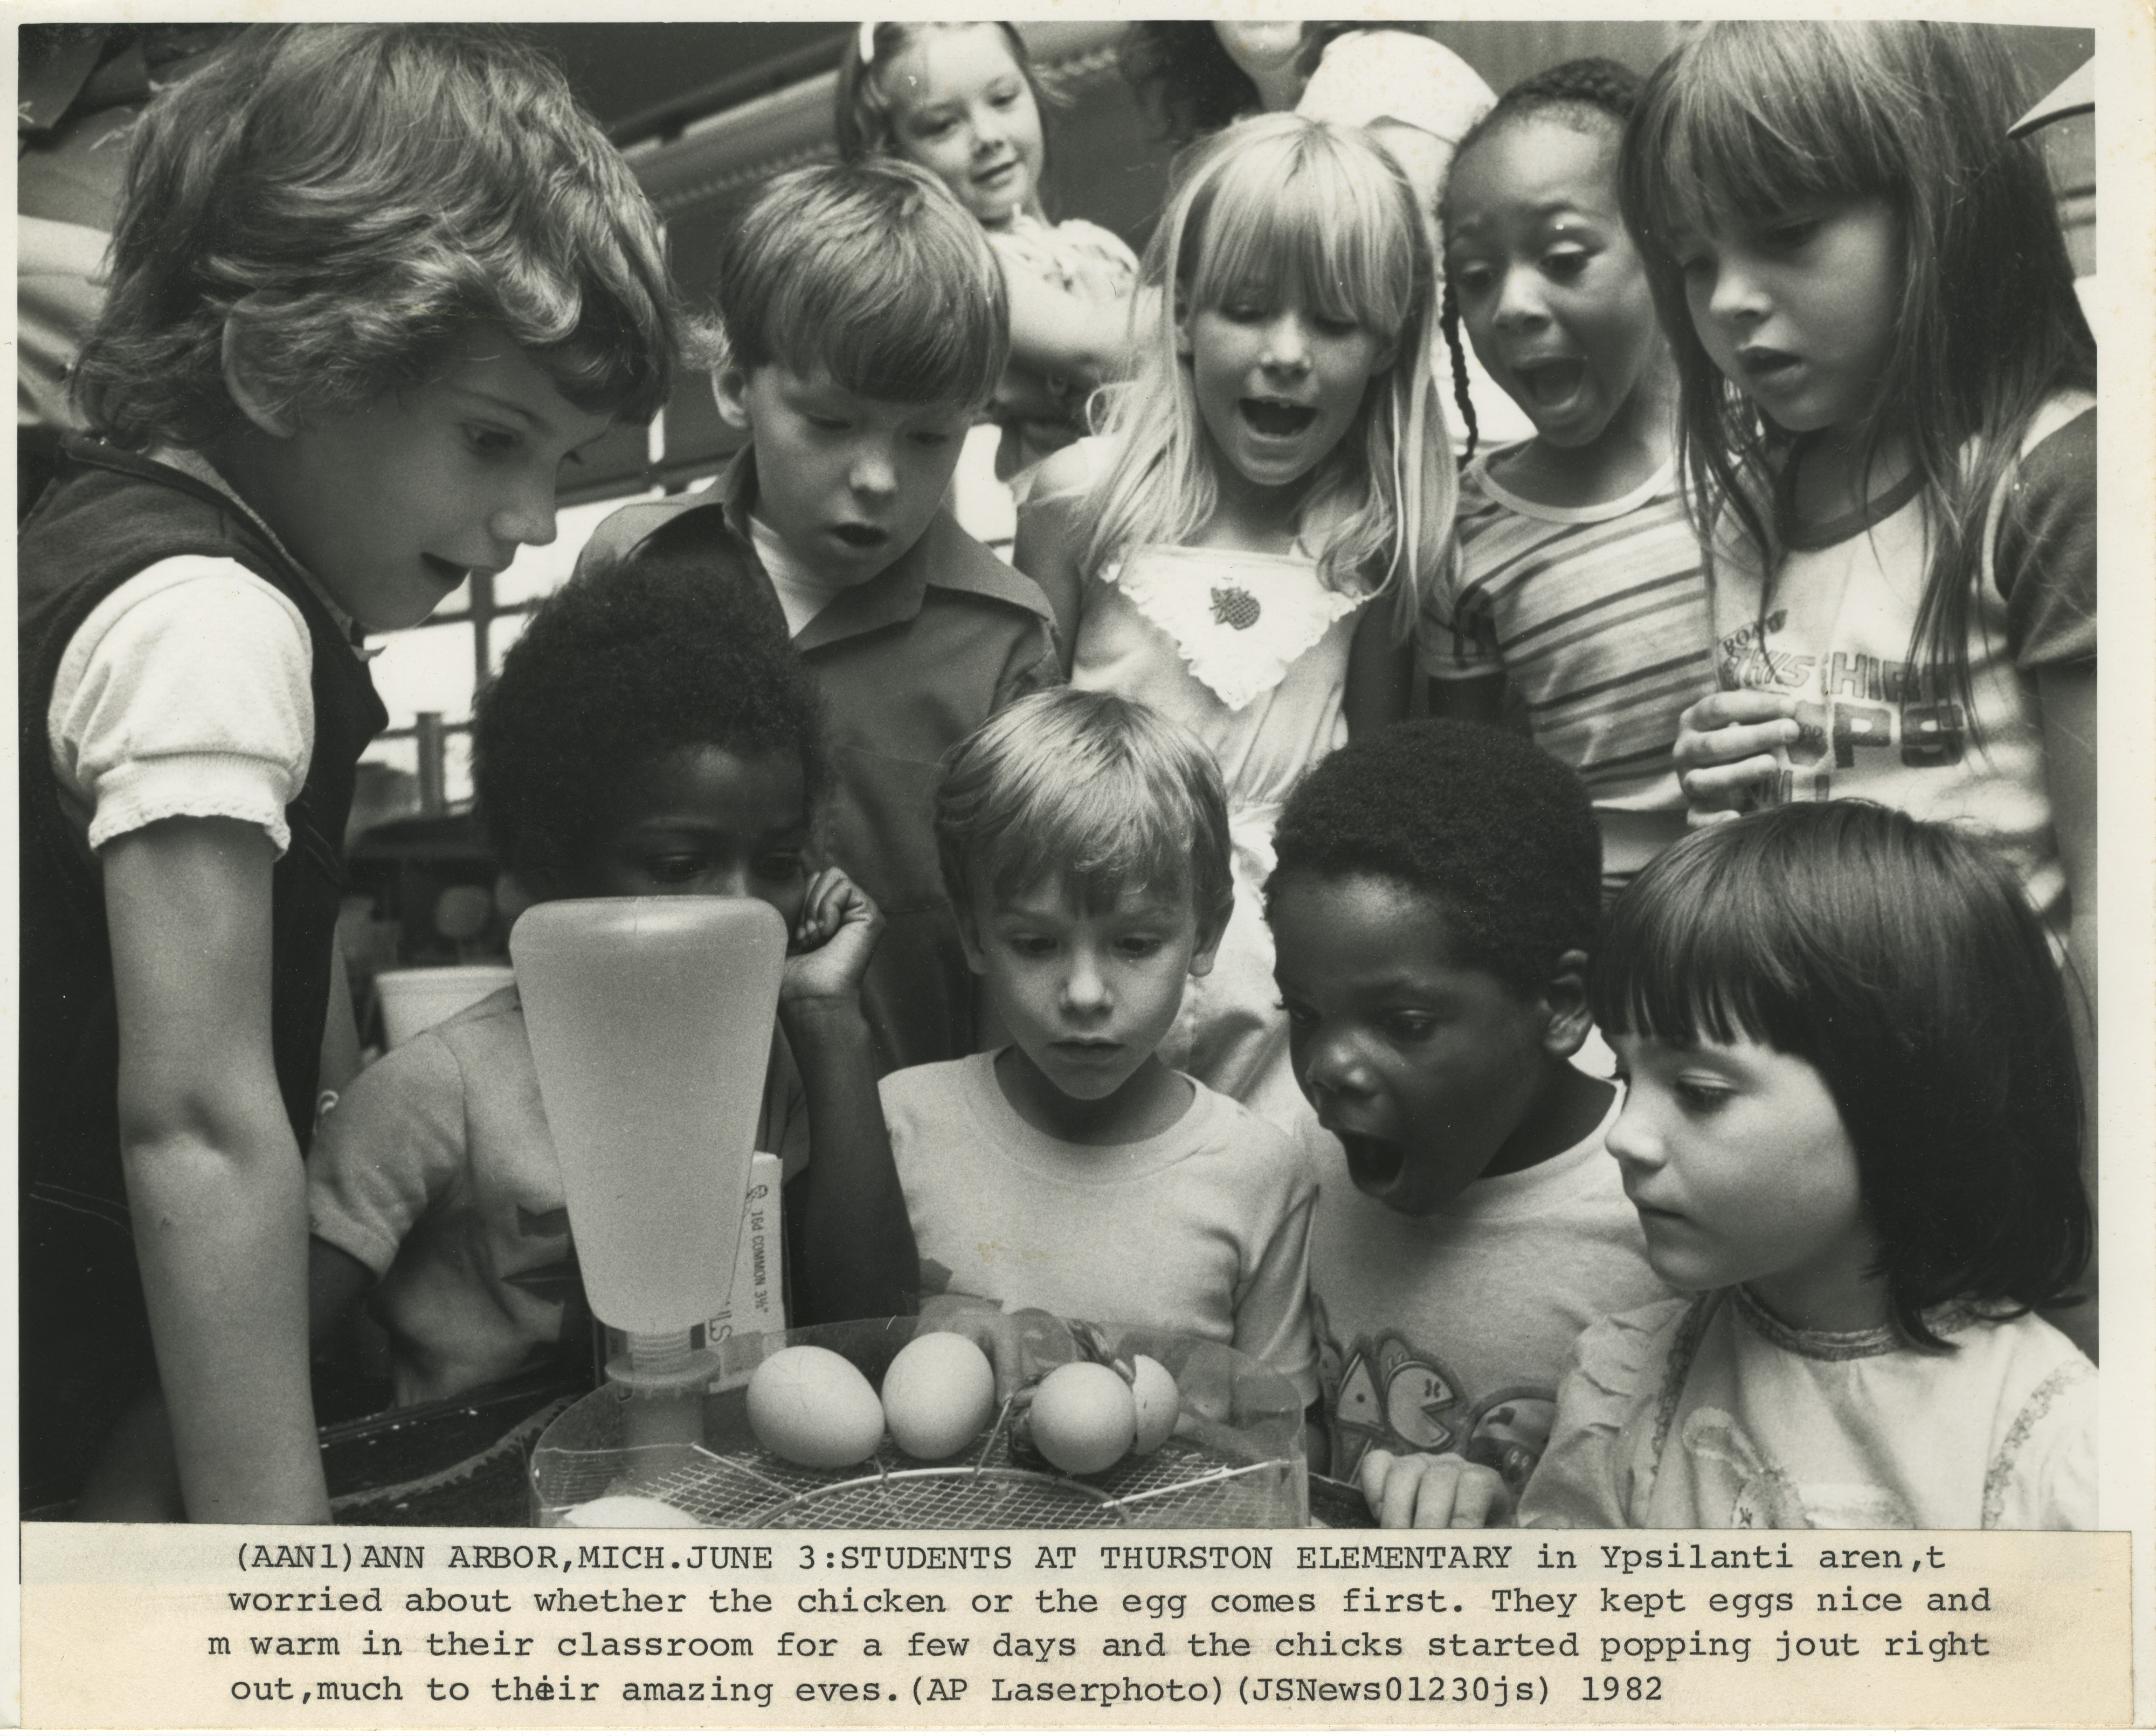 Thurston Elementary Students Watching Eggs Hatch, June 1982 image